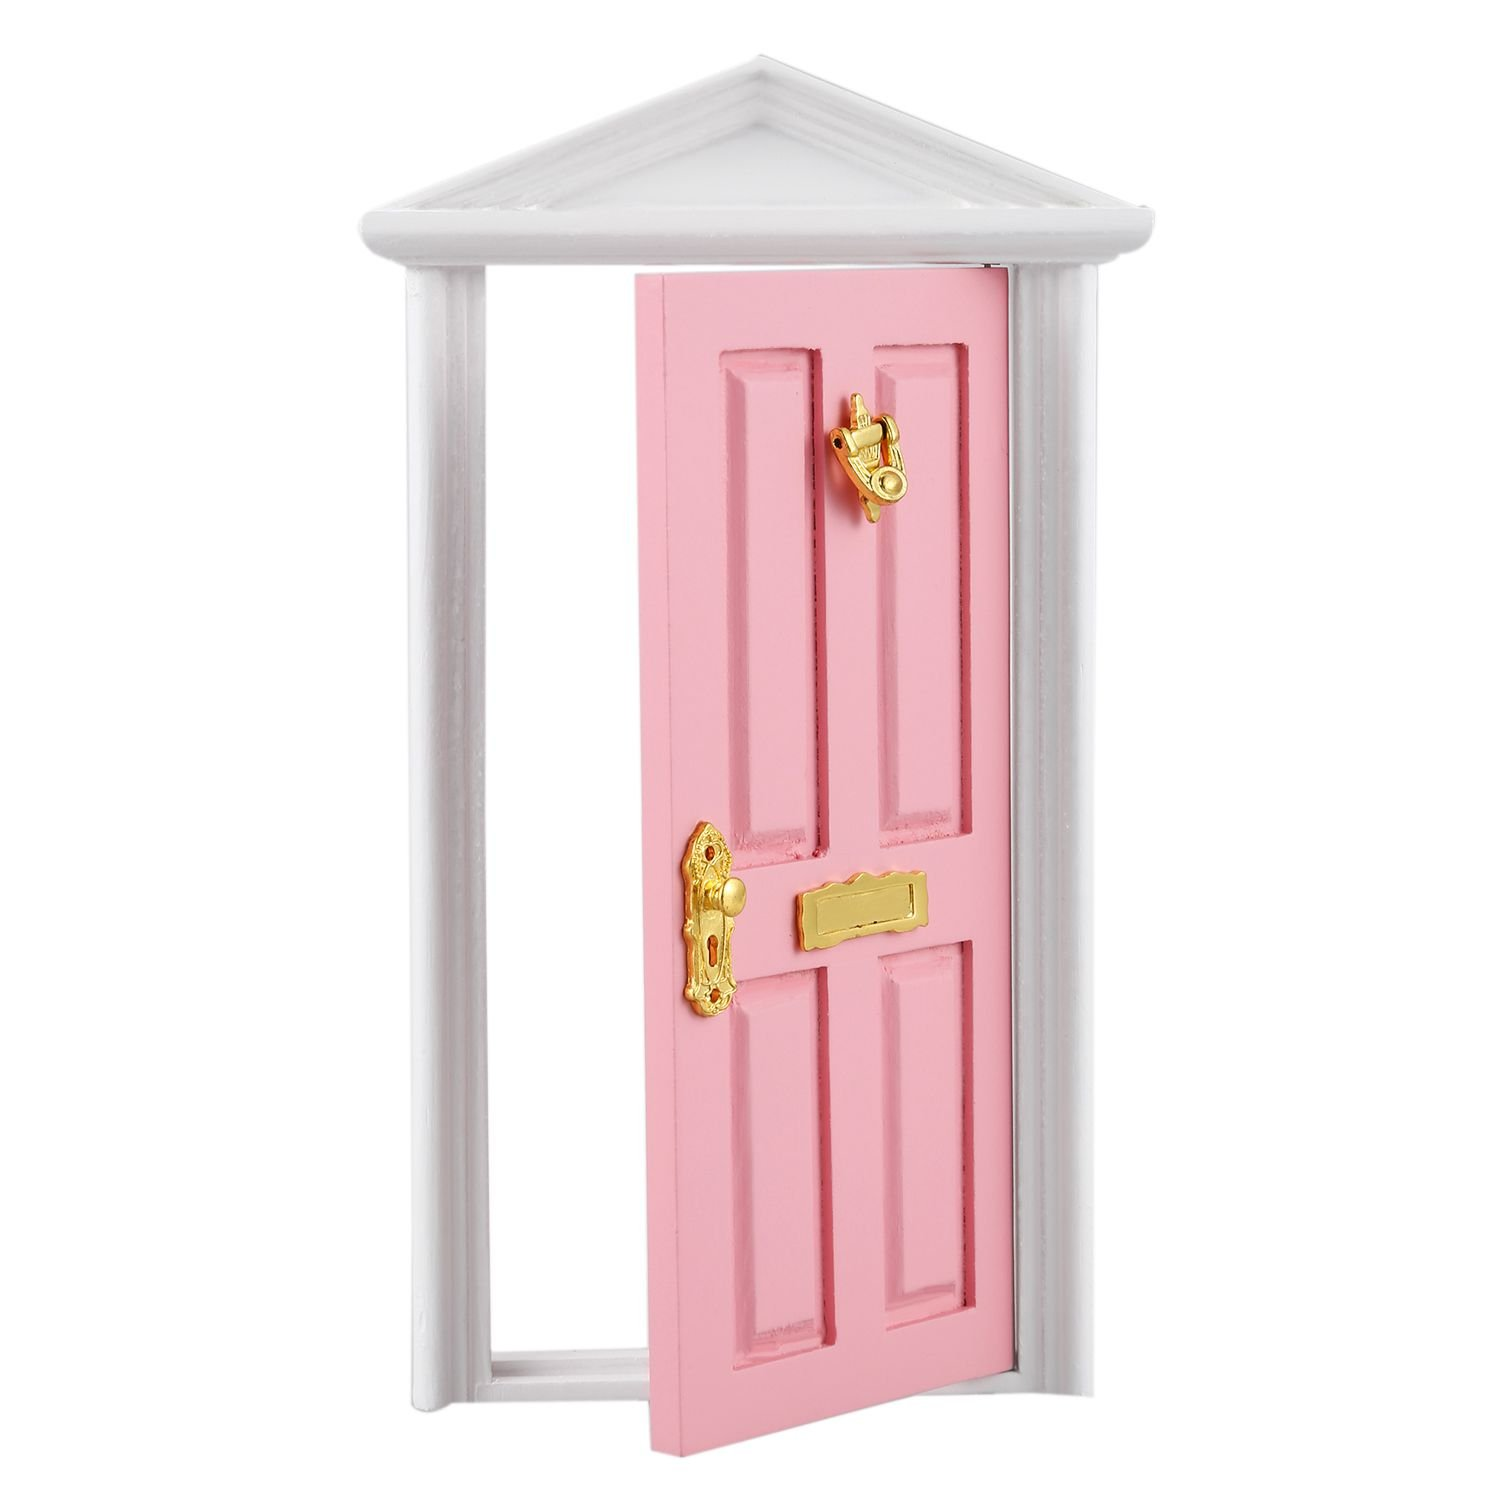 SODIAL Miniature Doll Houses Games Toys Wooden Door with Hardware - Pink 160152A1